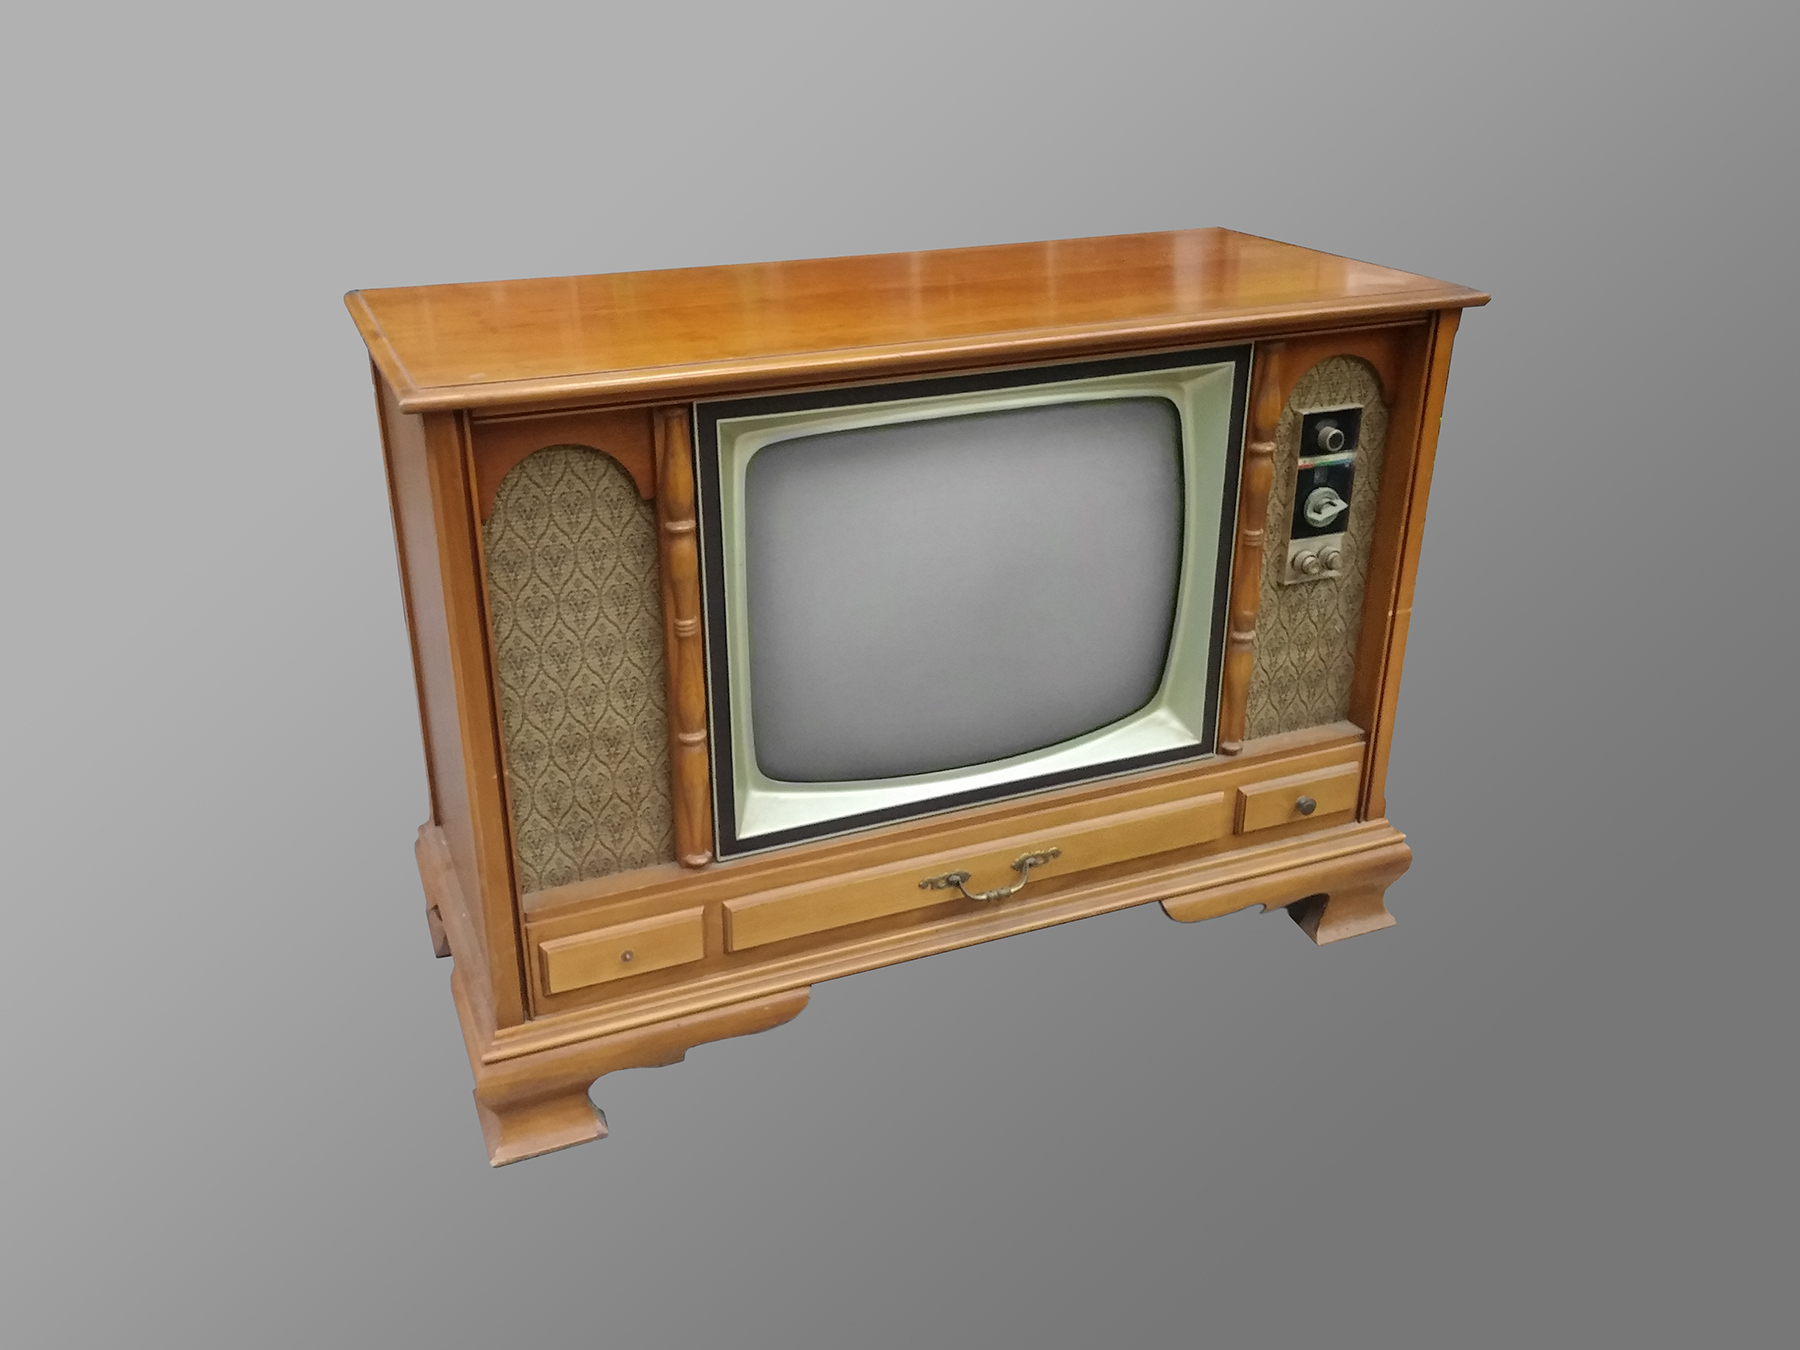 Montgomery Wards GHJ 23″ Console Television